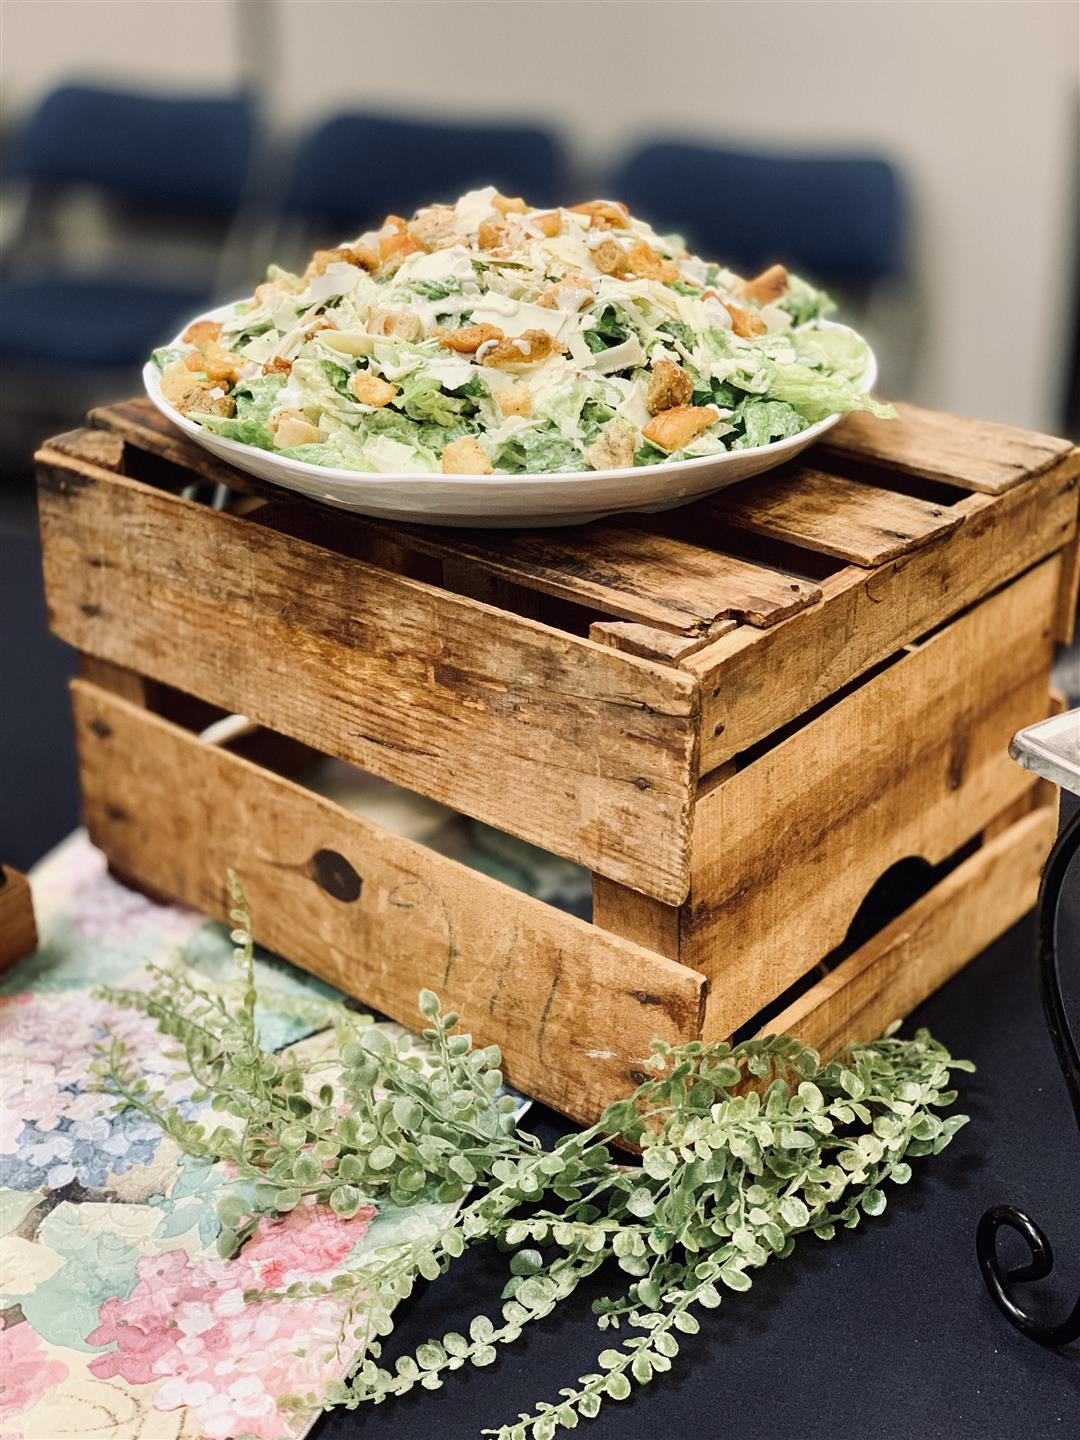 caesar salad on top of a wooden crate